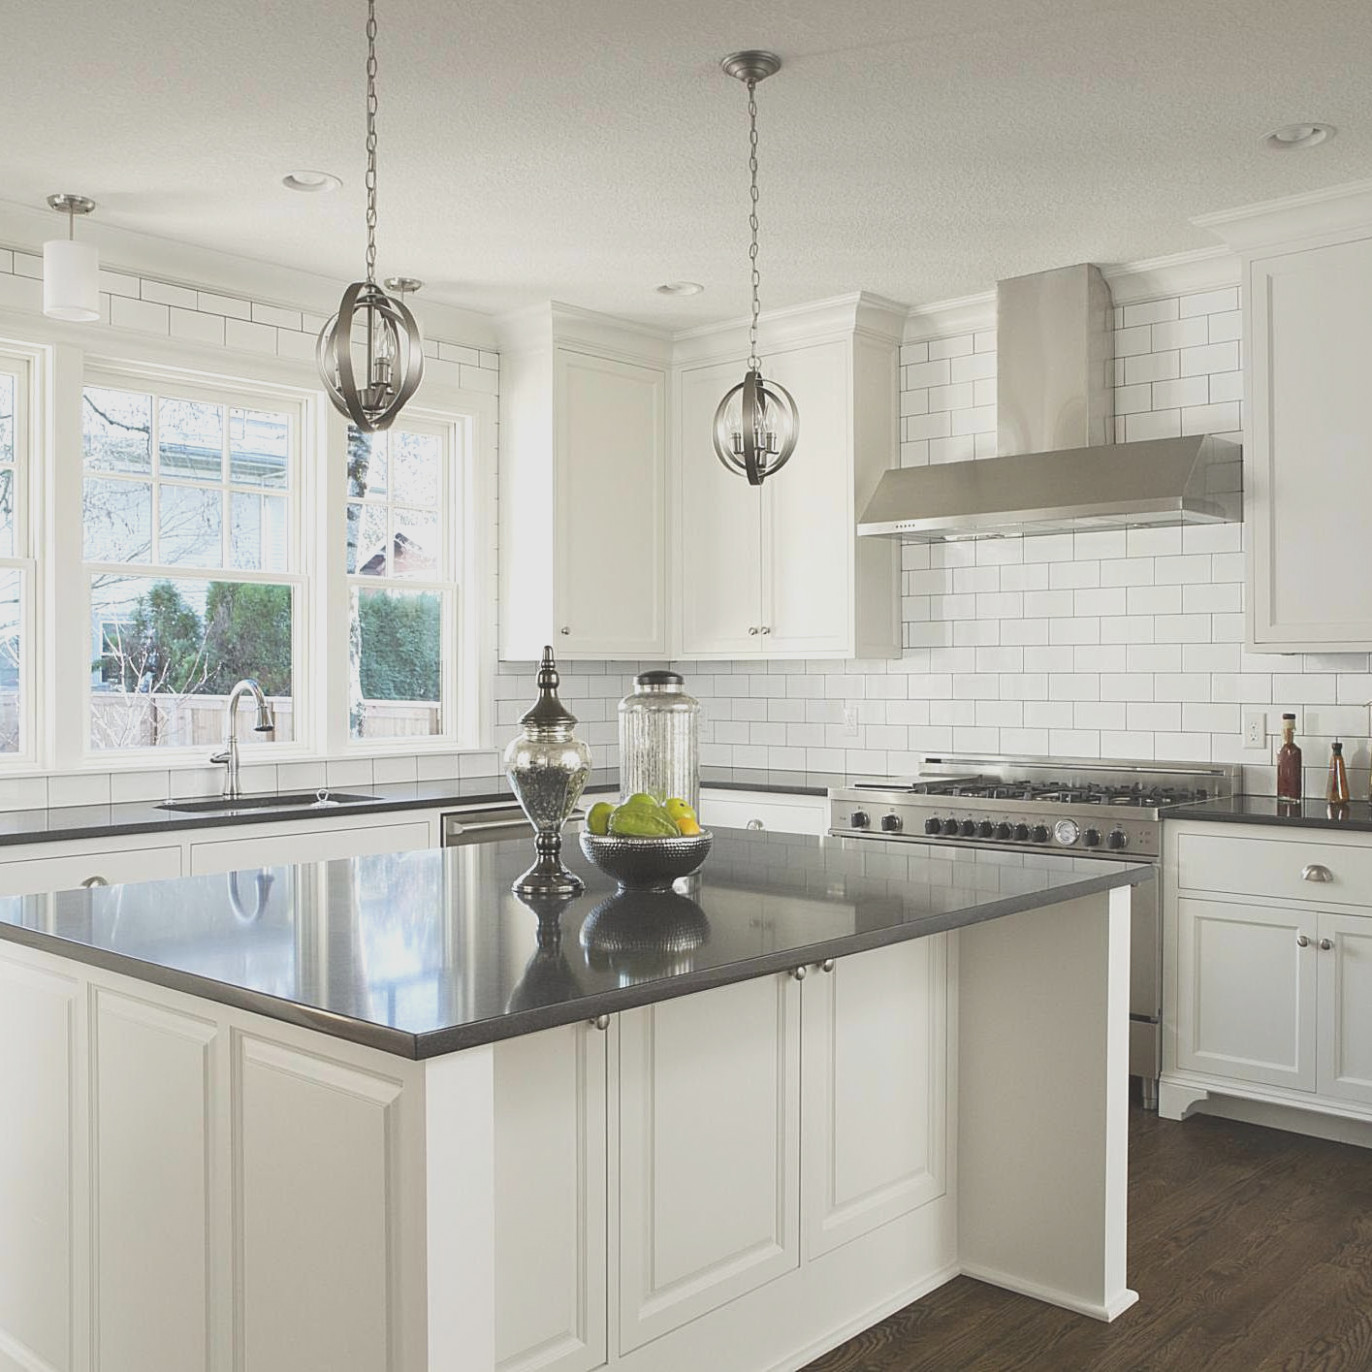 Knockdown Kitchen Cabinets for Sale